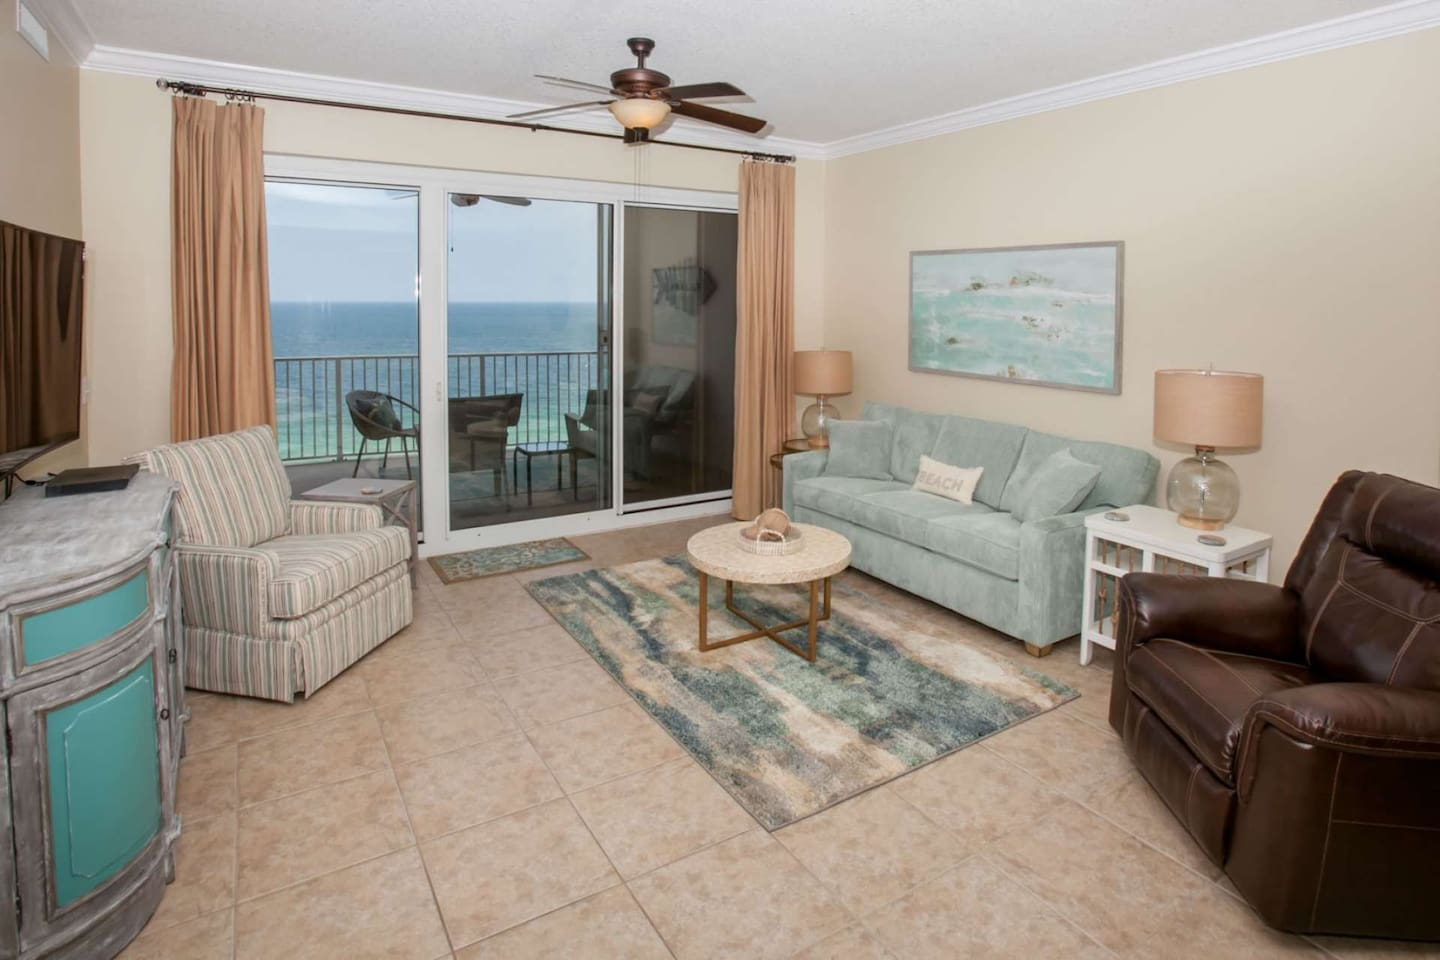 Tiled living room w/access to Gulf-front balcony